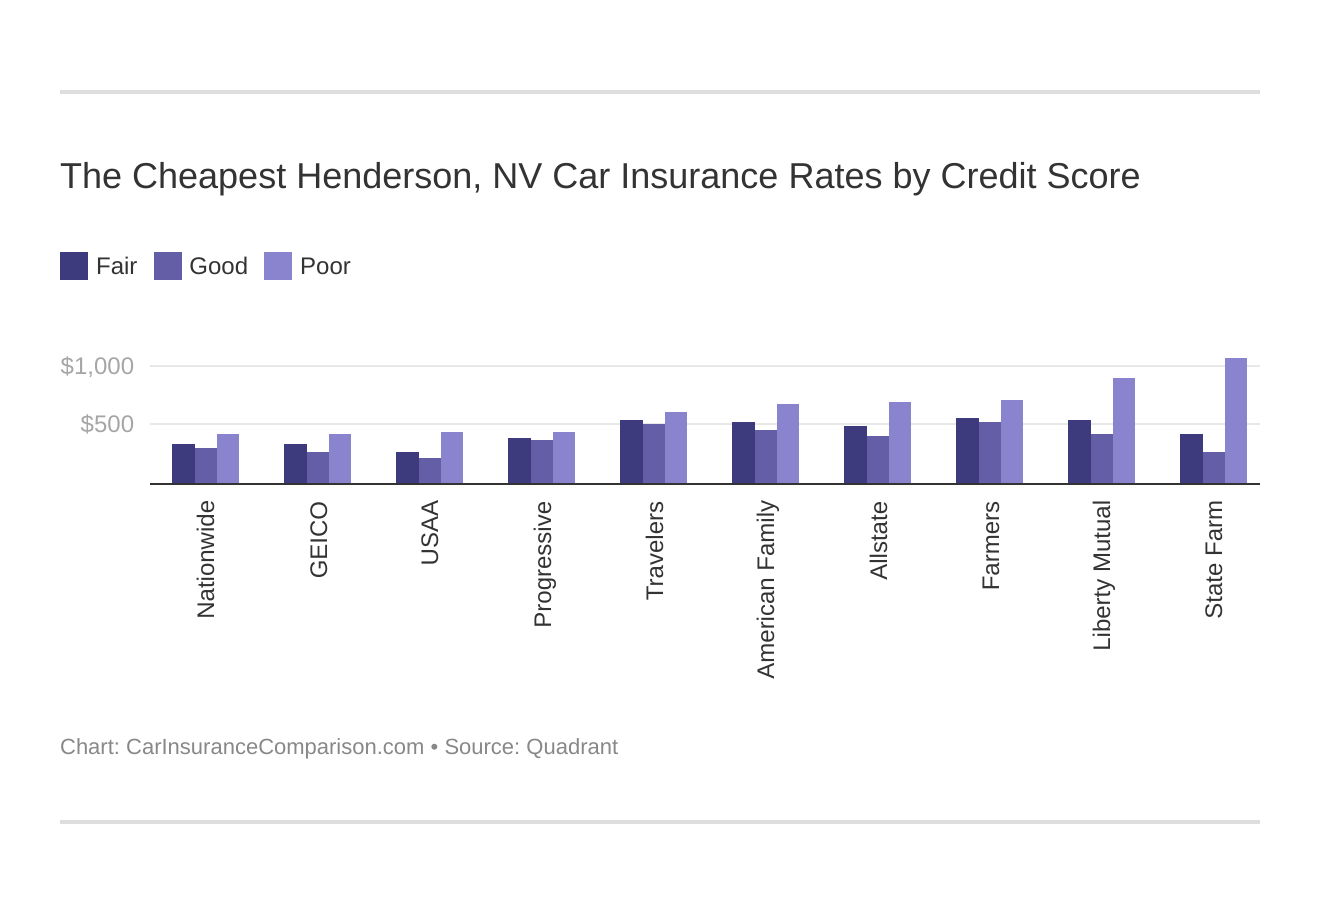 The Cheapest Henderson, NV Car Insurance Rates by Credit Score